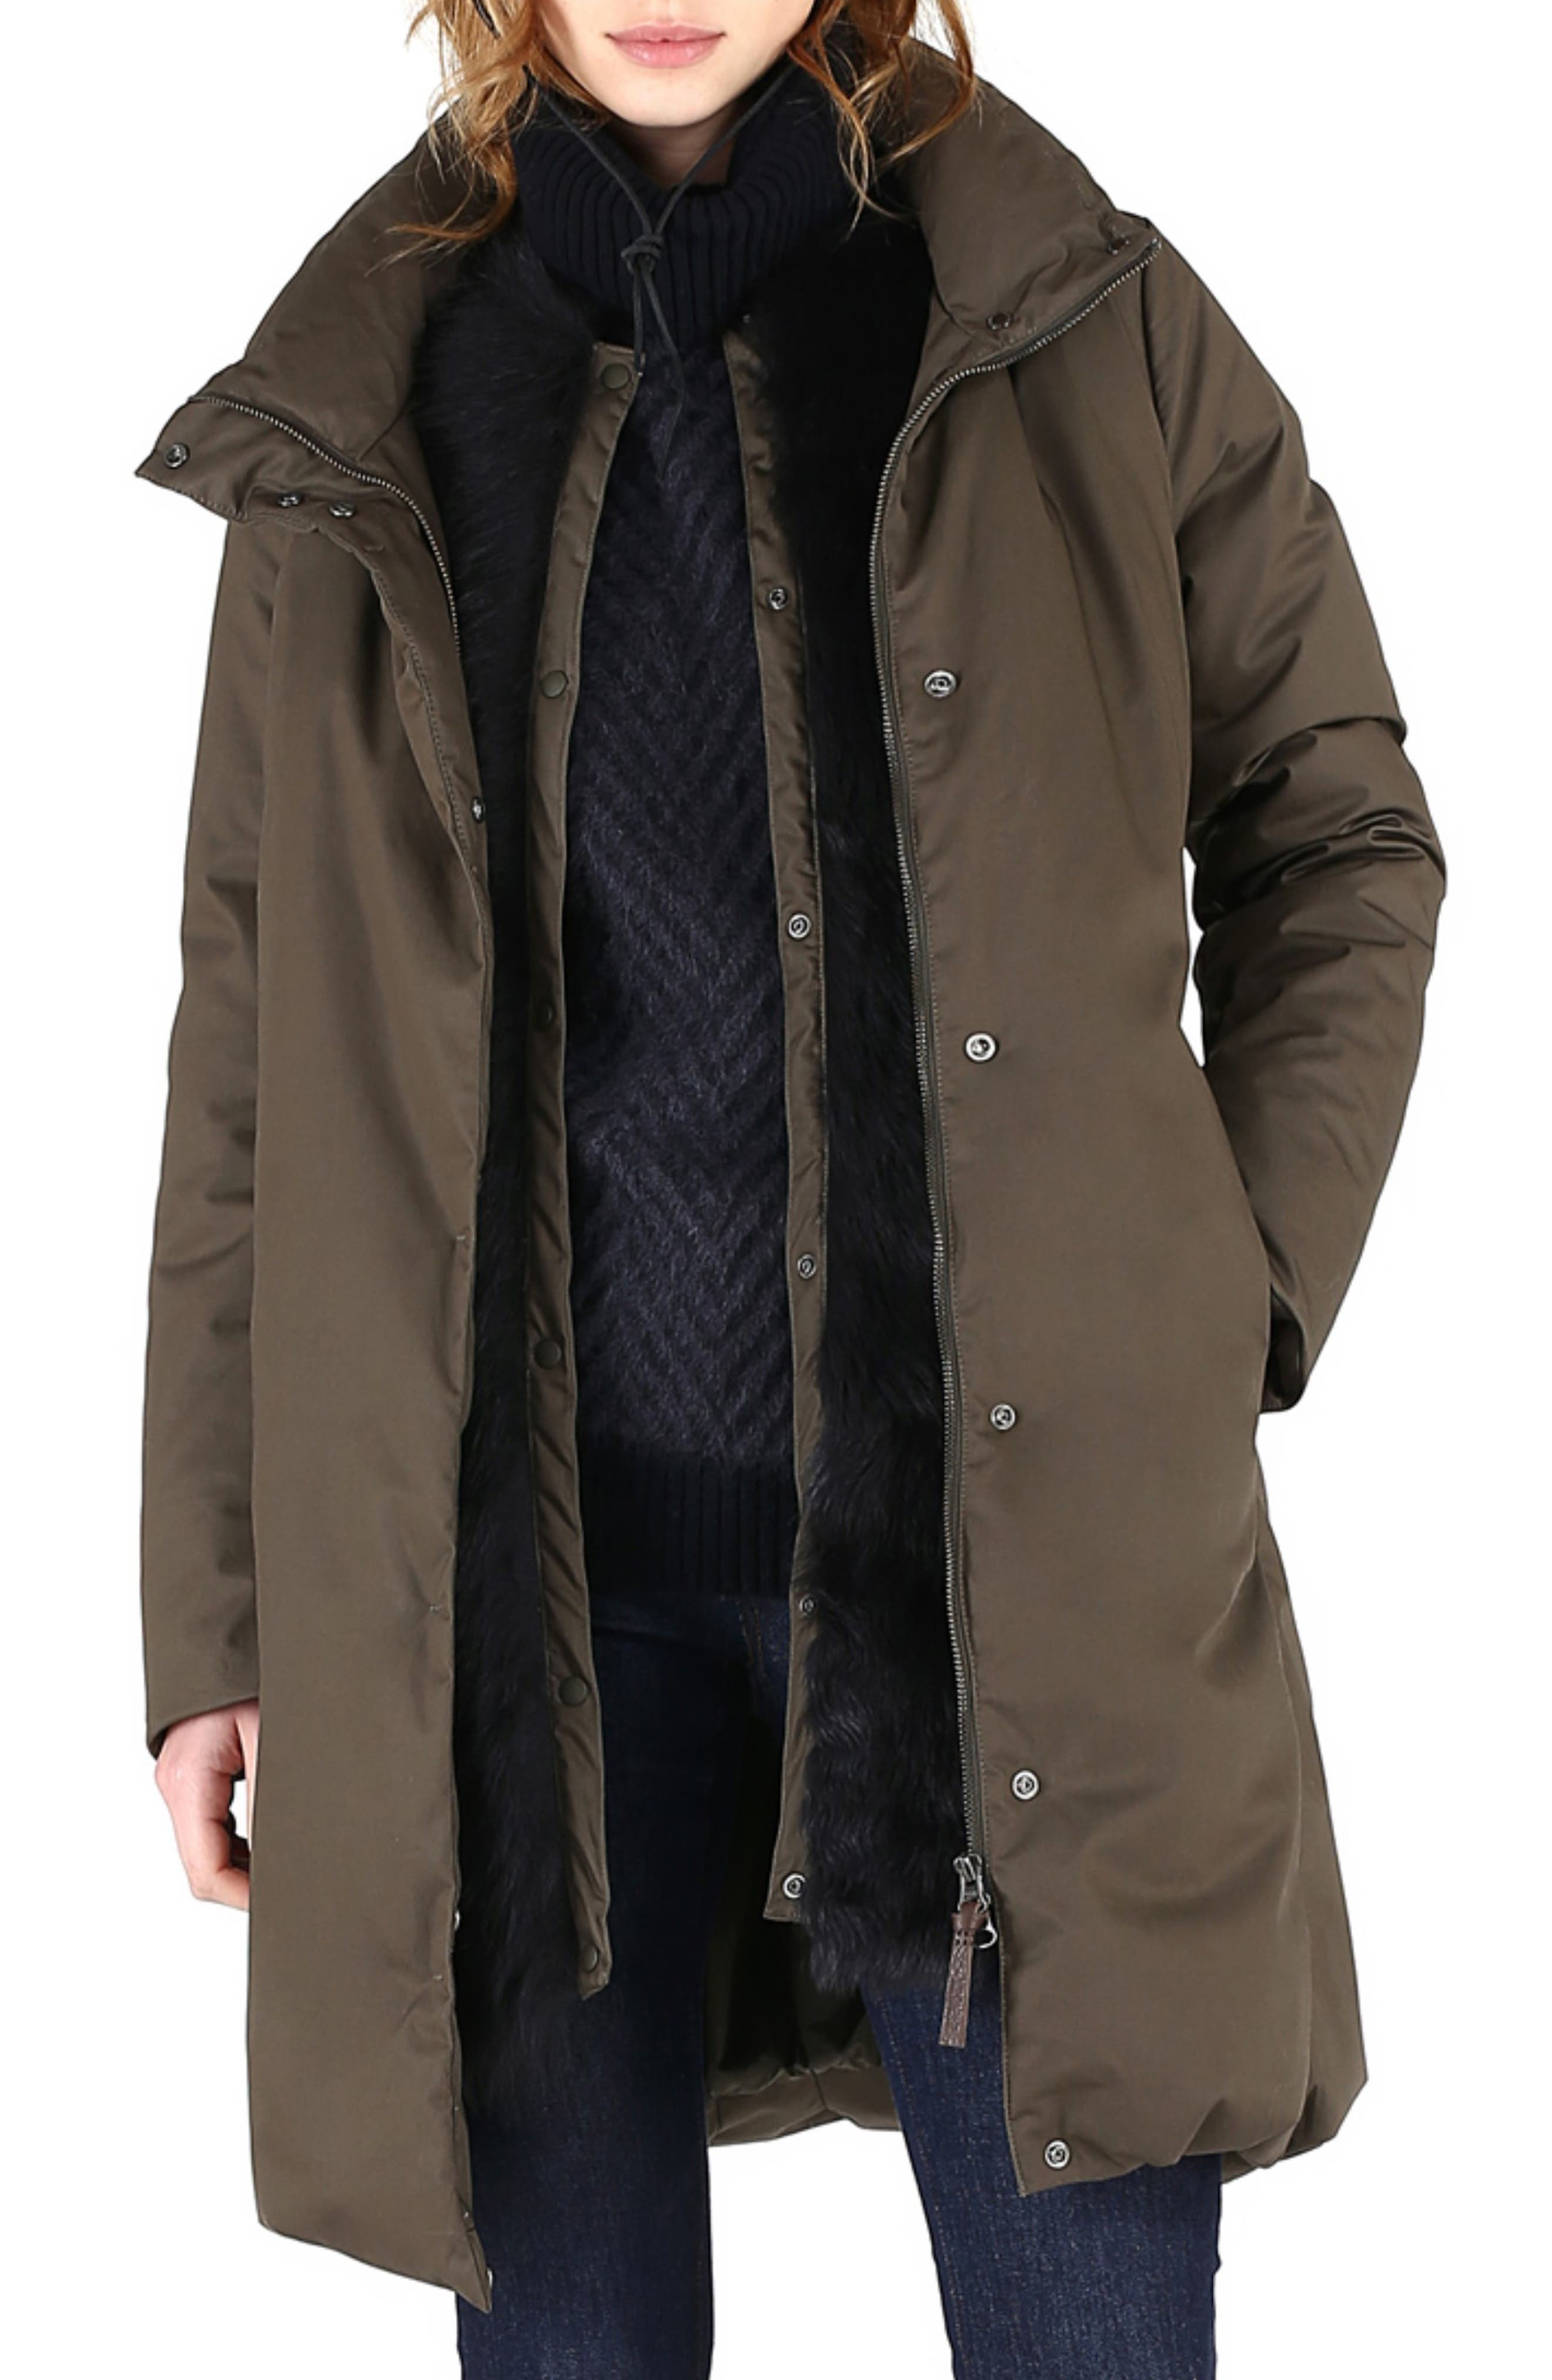 Cocoon Genuine Shearling Lined Down Coat,                         Main,                         color, MILITARY OLIVE